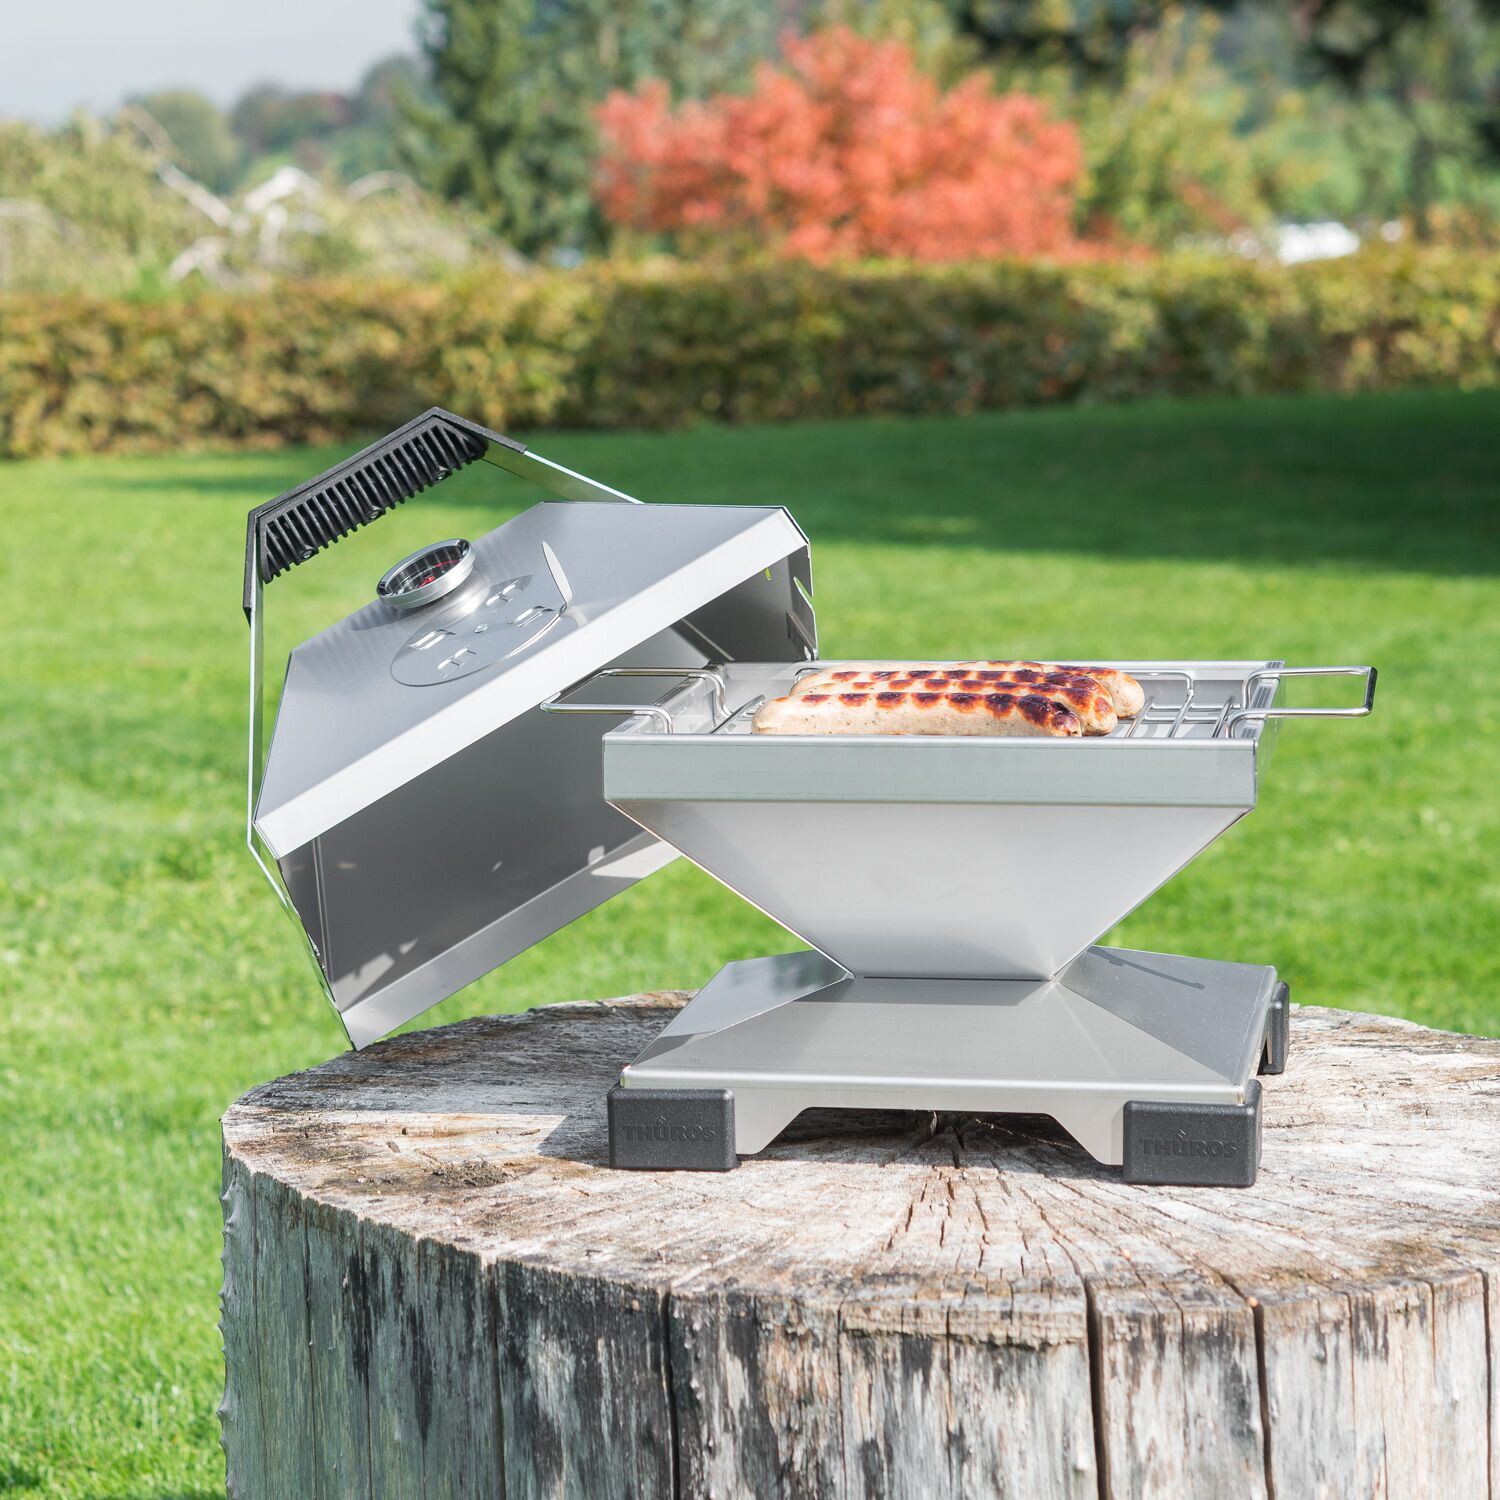 Thuros Table Top Grill